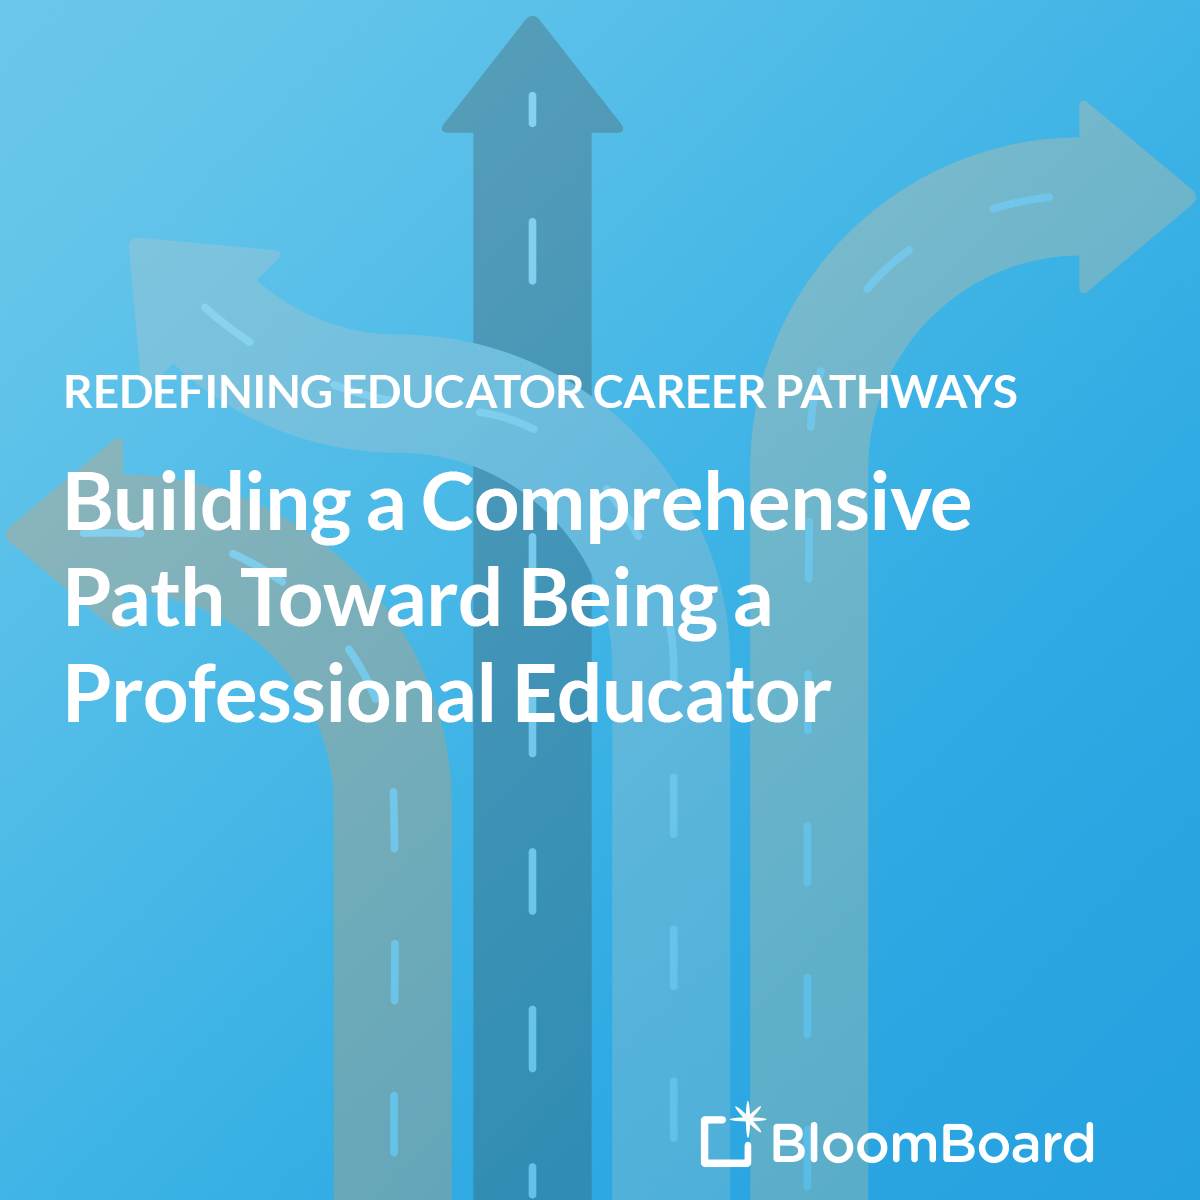 Guide | Building a Comprehensive Path Toward Being a Professional Educator